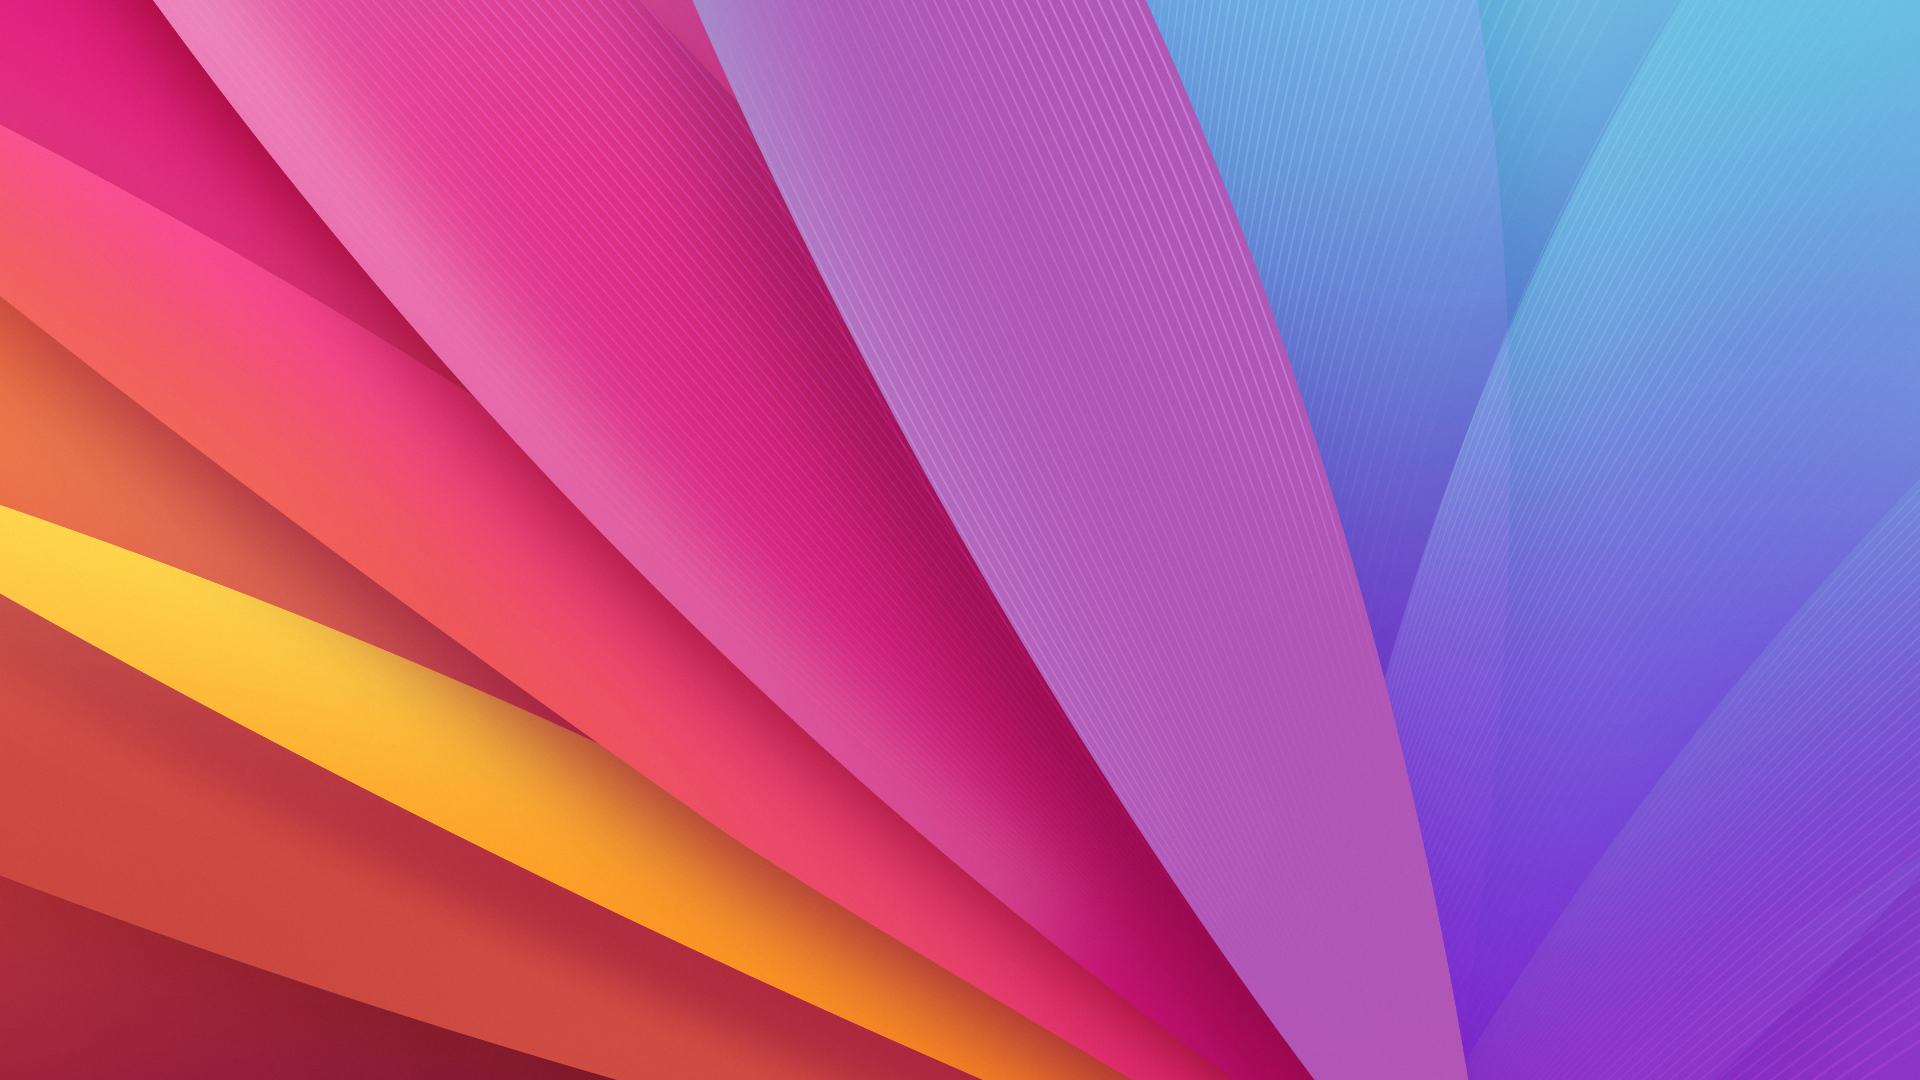 Colorful Abstract 8k Wallpapers | HD Wallpapers